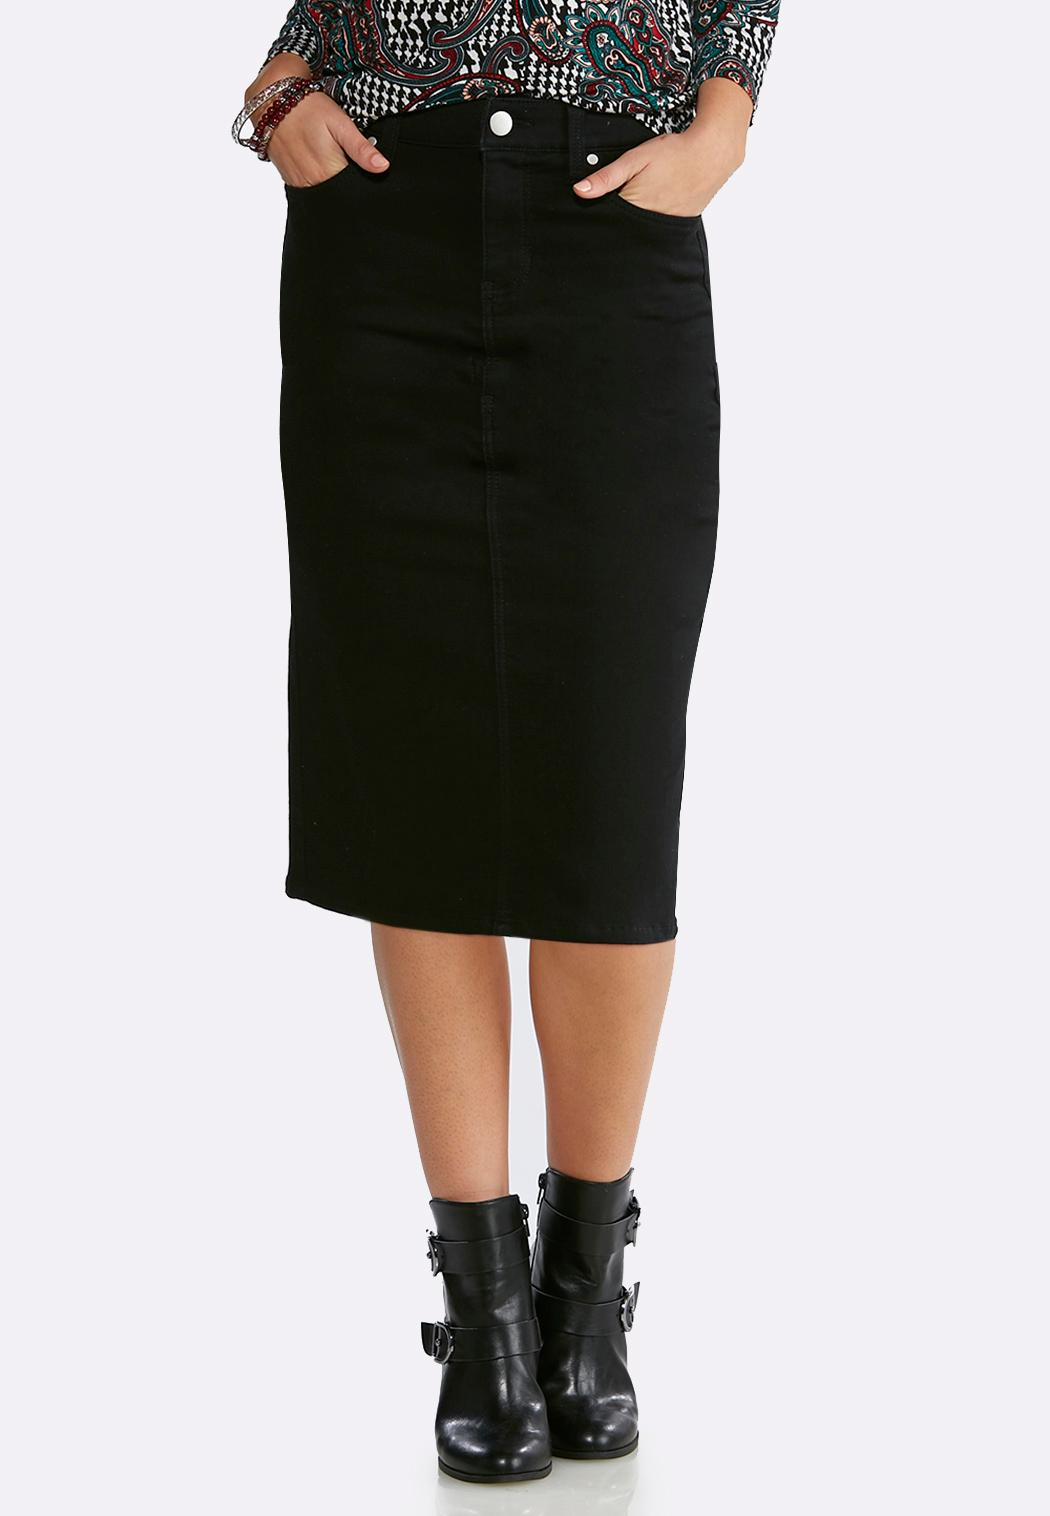 2c80638c225 Women s Plus Size Skirts